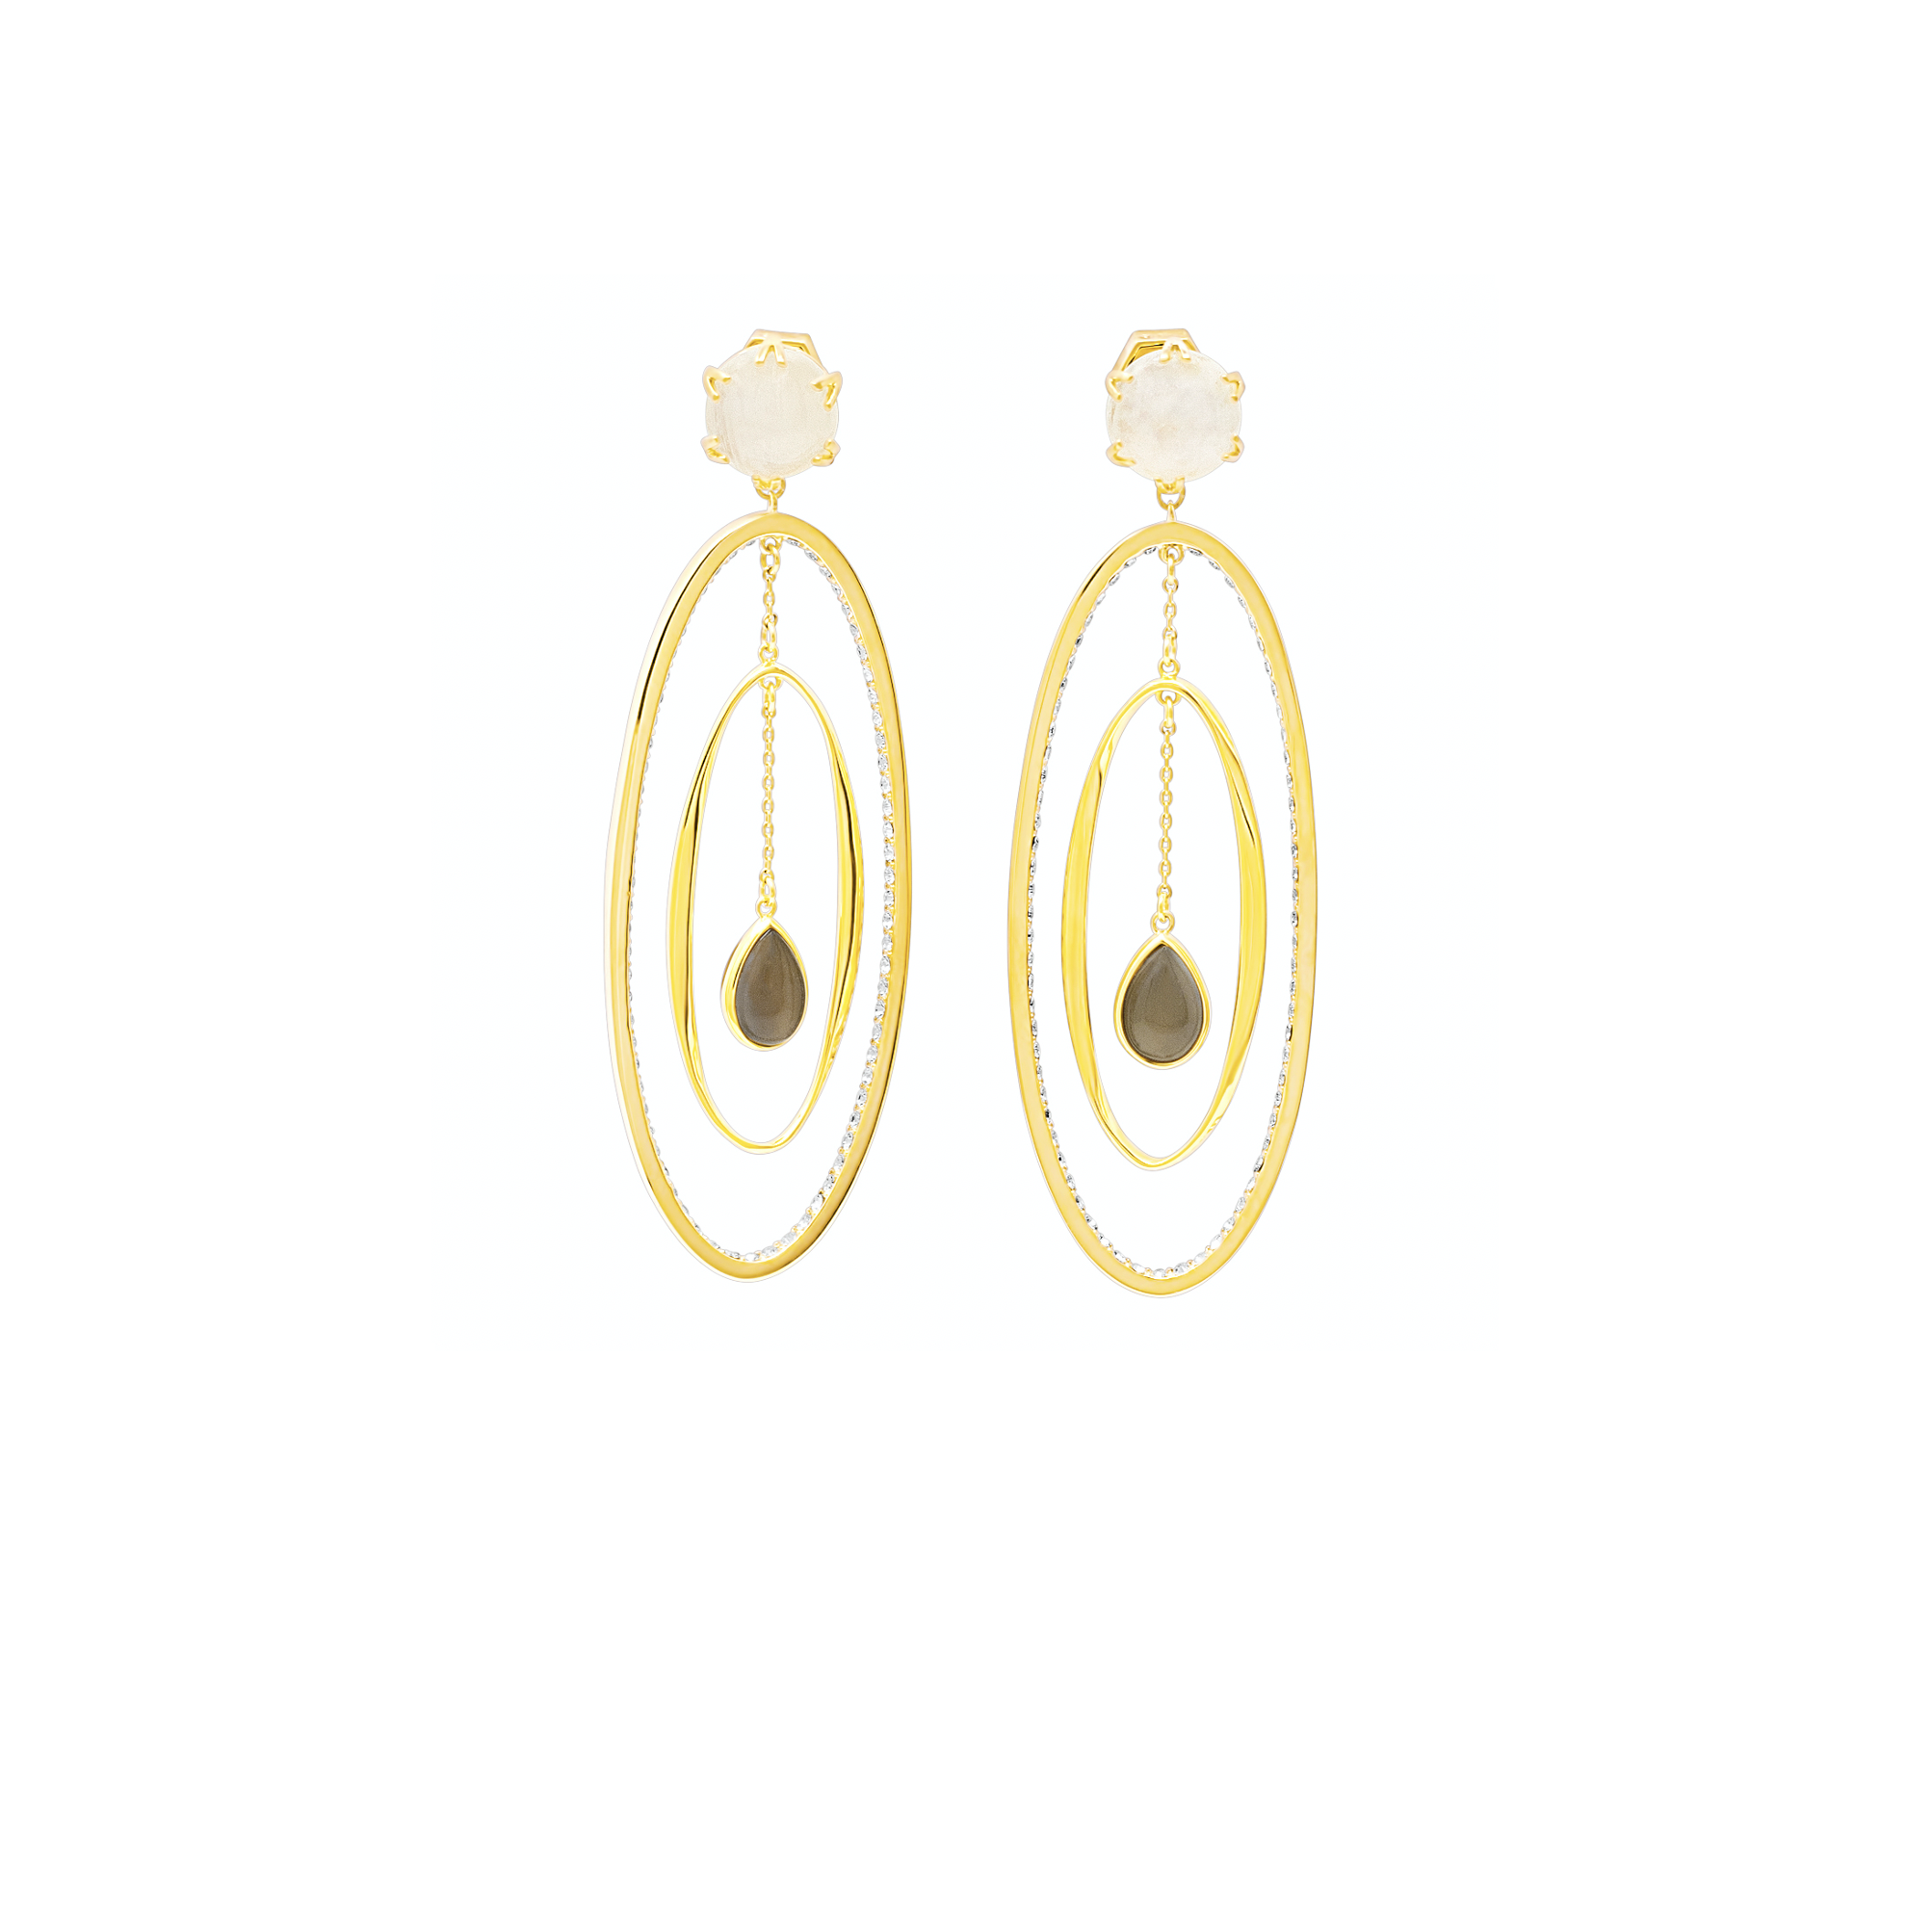 Moonstone Statement Earrings